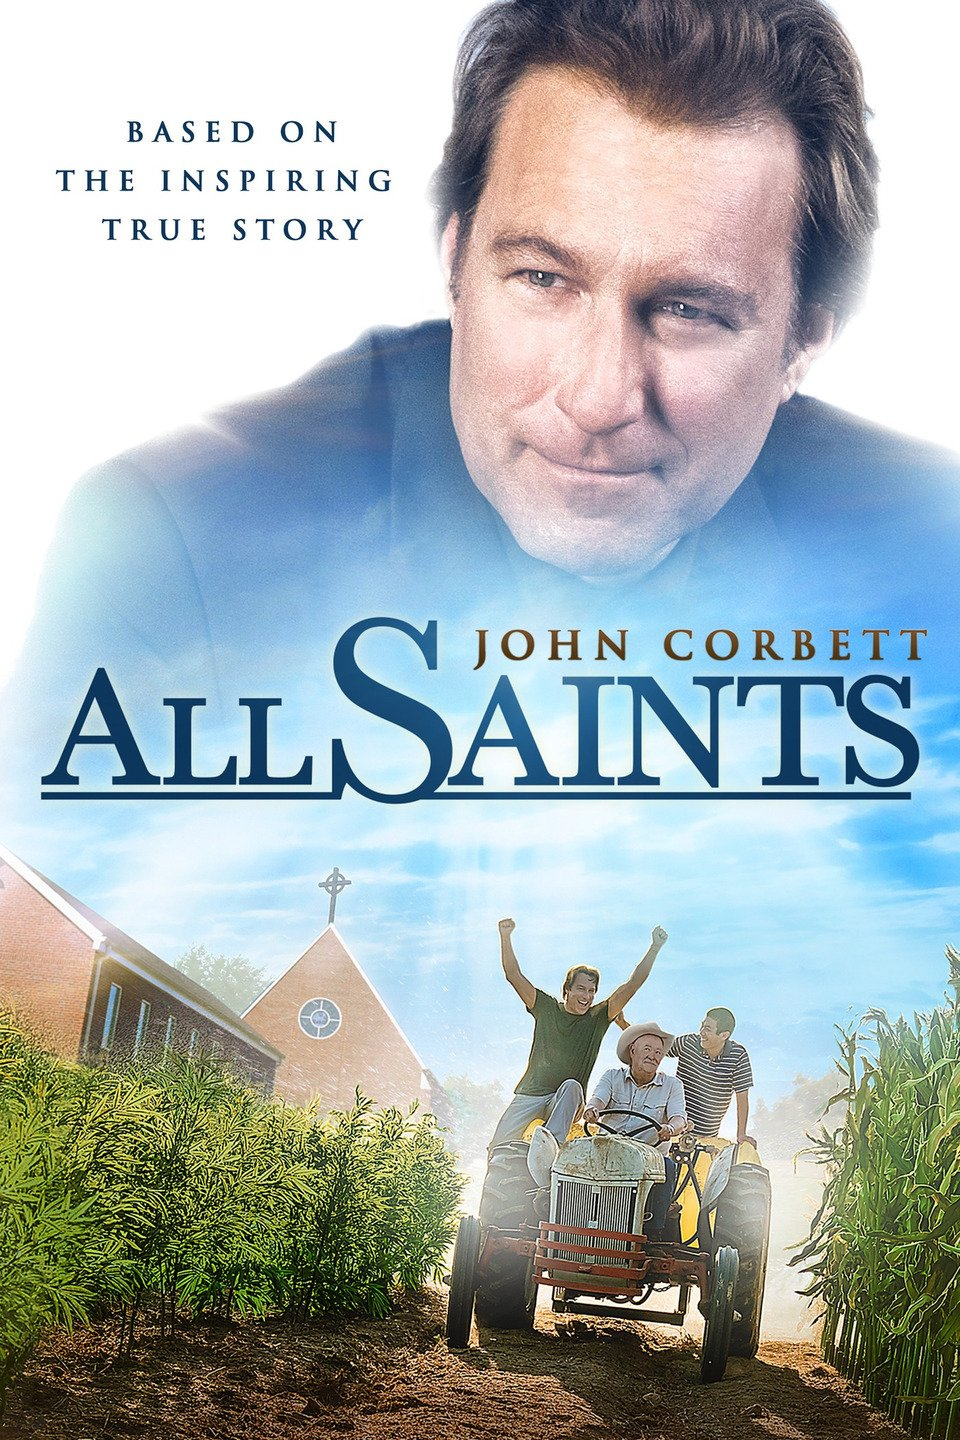 All Saints Part 2 - March 20    Michael Spurlock decides to trade in his corporate sales career to become a pastor. Unfortunately, his first assignment is to close a country church and sell the prime piece of land where it sits. He soon has a change of heart when the church starts to welcome refugees from Burma. Spurlock now finds himself working with the refugees to turn the land into a working farm to pay the church's bills.